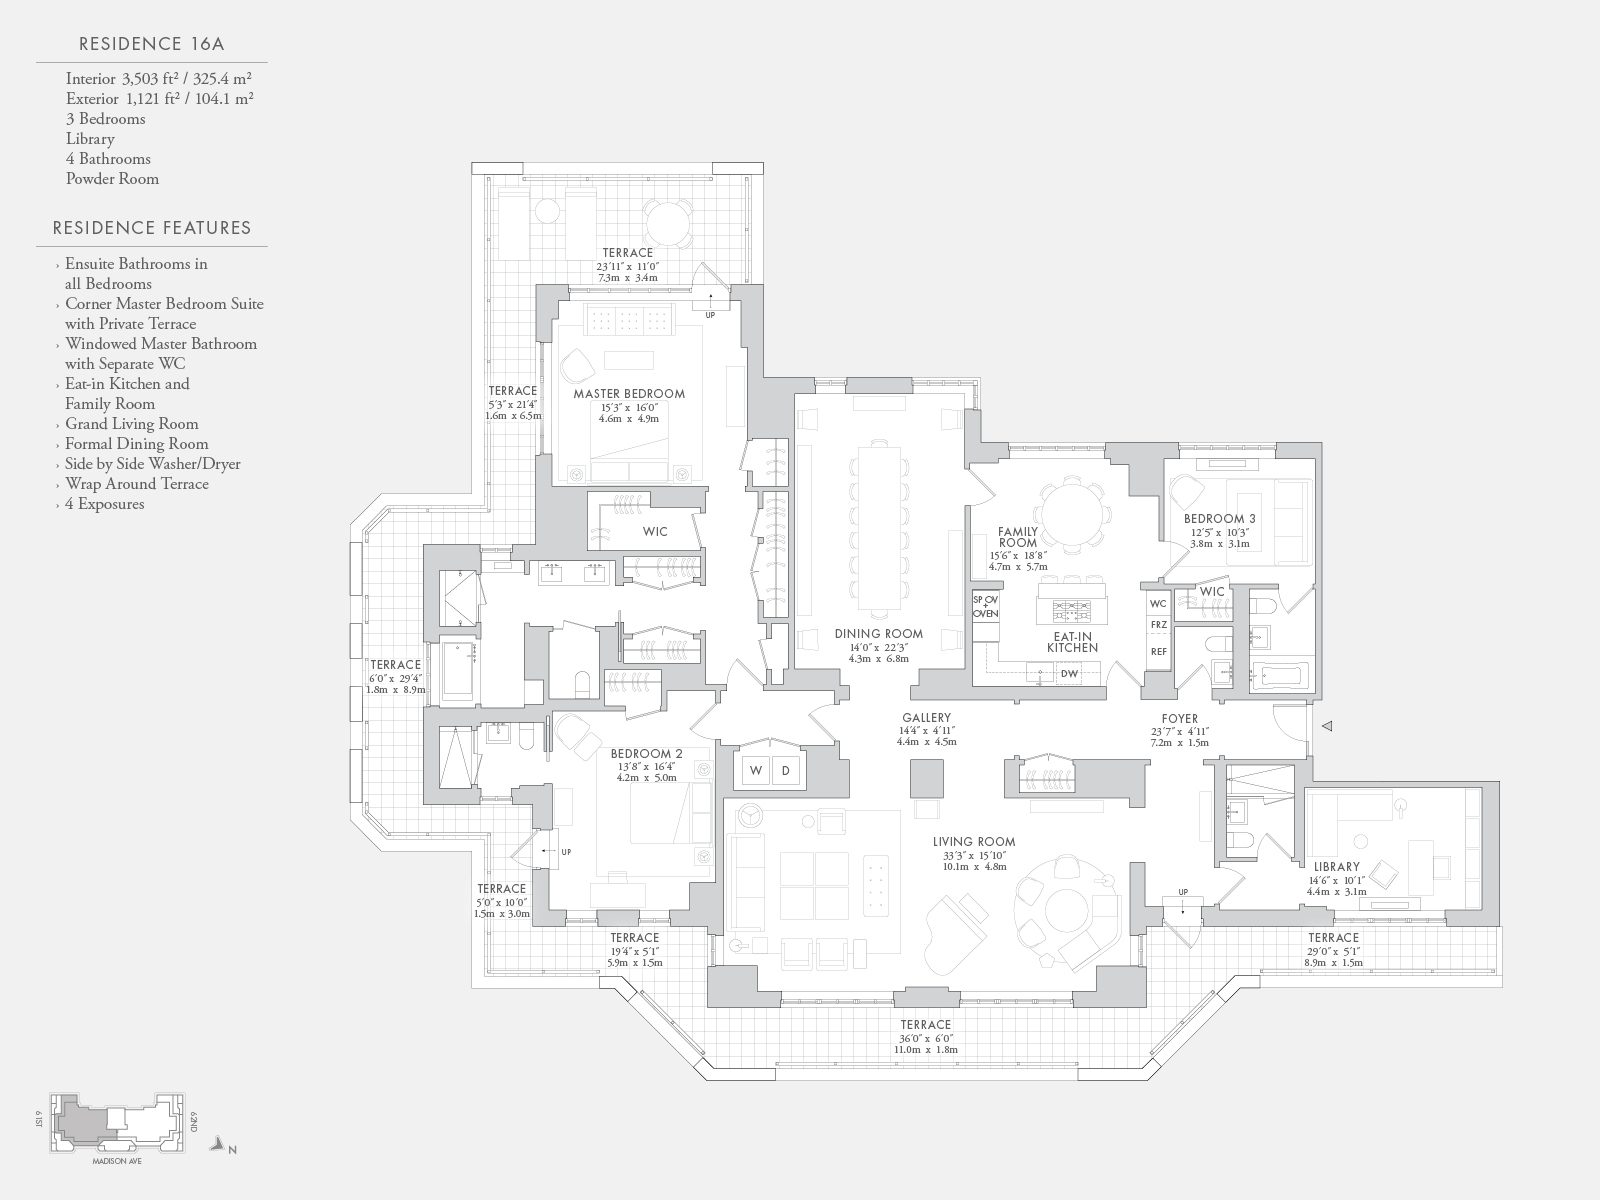 The carlton house floorplans new york city for Apartment floor plans new york city